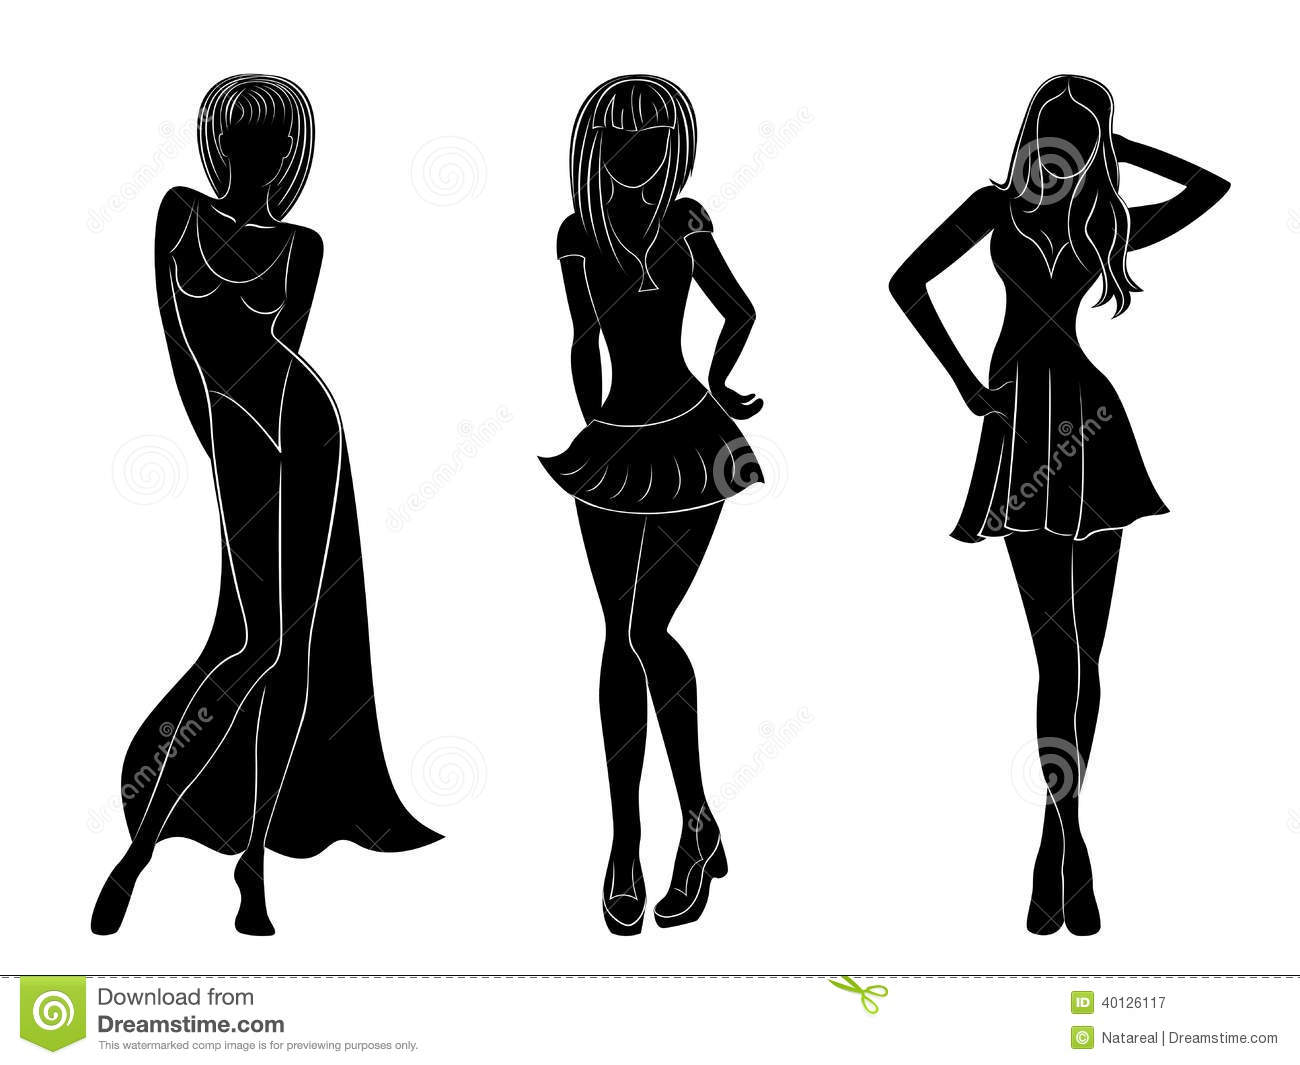 Figure drawing model poses online dating 3